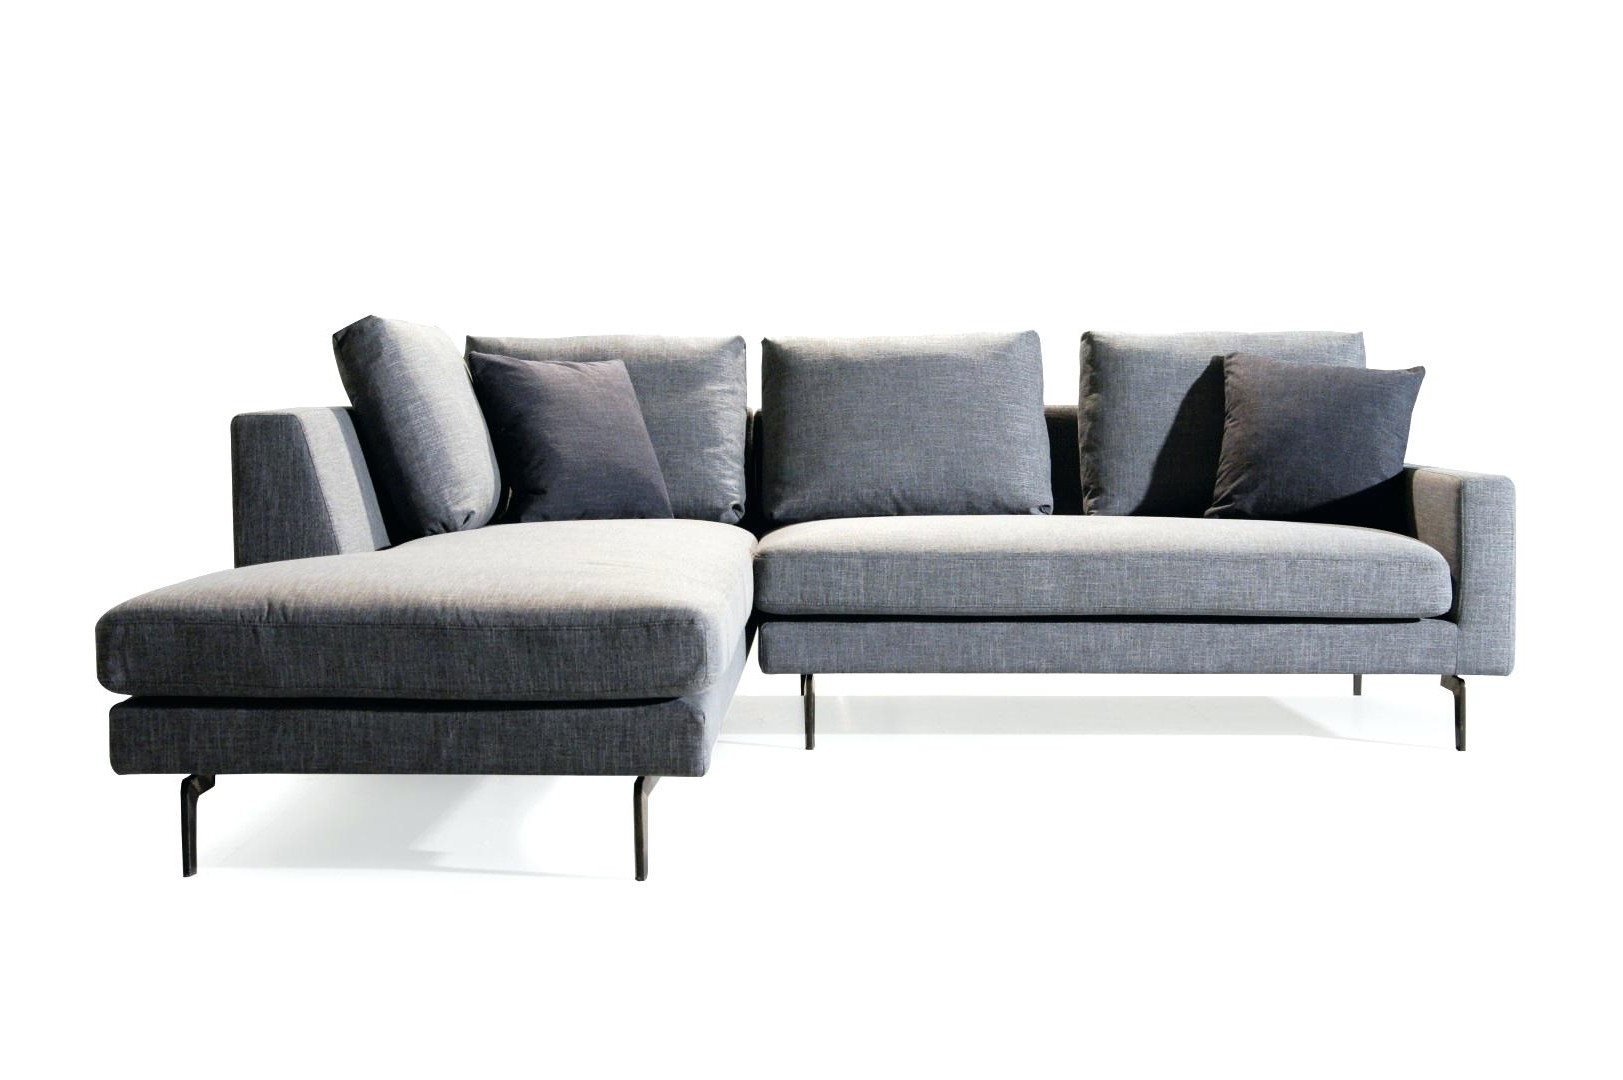 Furniture : Corner Sofa Uk Sectional Couch Layout Sectional Sofa Pertaining To Recent Kijiji Calgary Sectional Sofas (View 6 of 20)